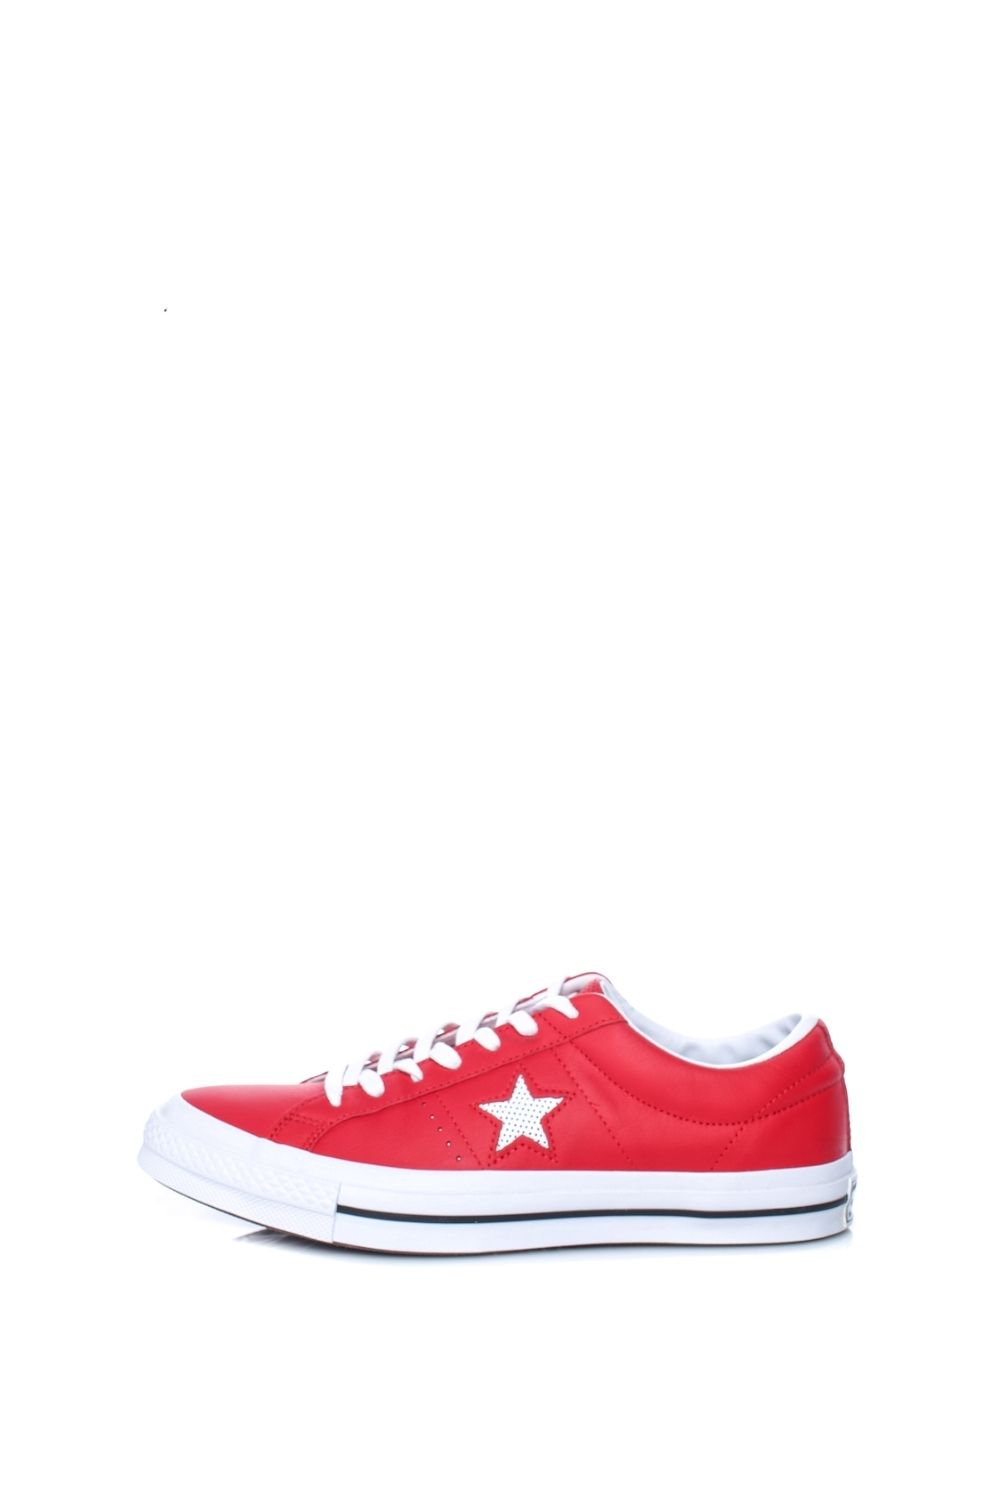 CONVERSE – Unisex sneakers CONVERSE One Star Ox κόκκινα